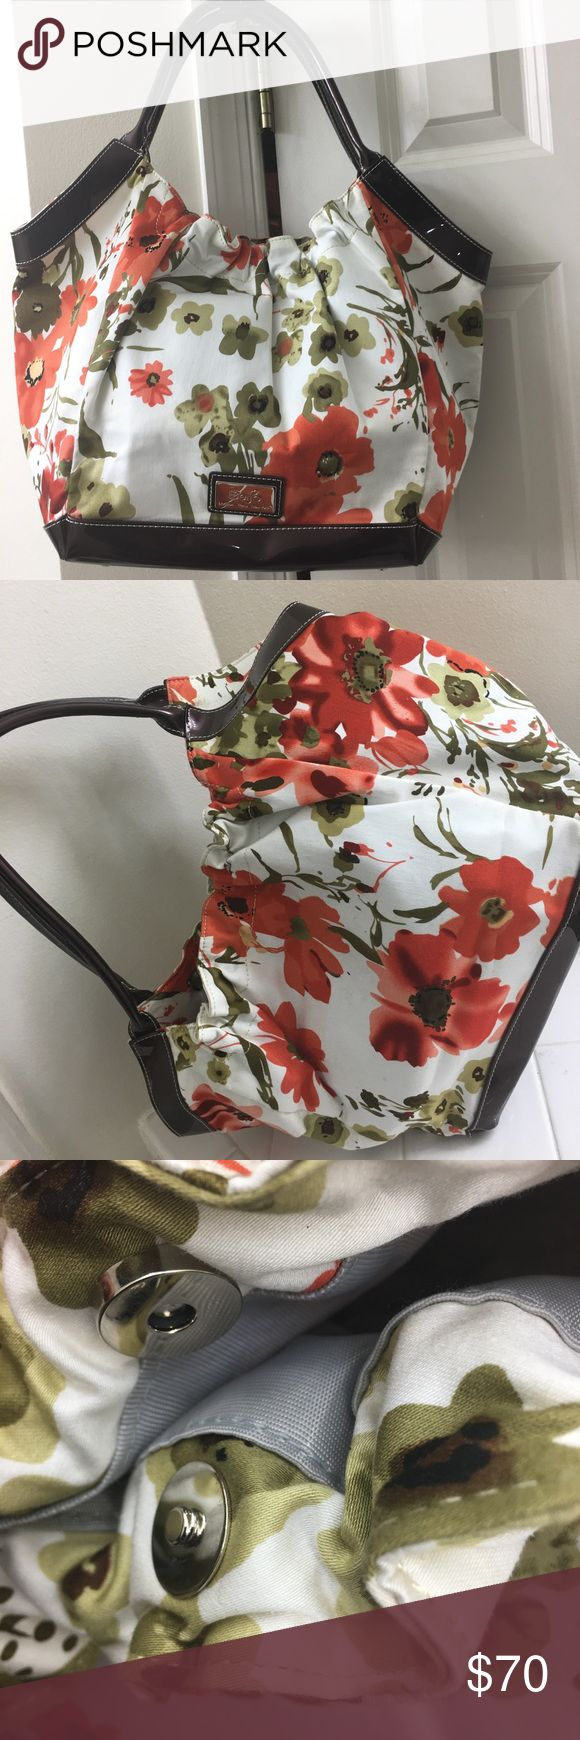 "Beijo bag Adorable bag Offering features like: - a magnetic closure -cell phone and intérieur pouch pocket -interior is light grey In very good condition 15.5"" L x 12 "" H x 7 W Beijo Bags Hobos"